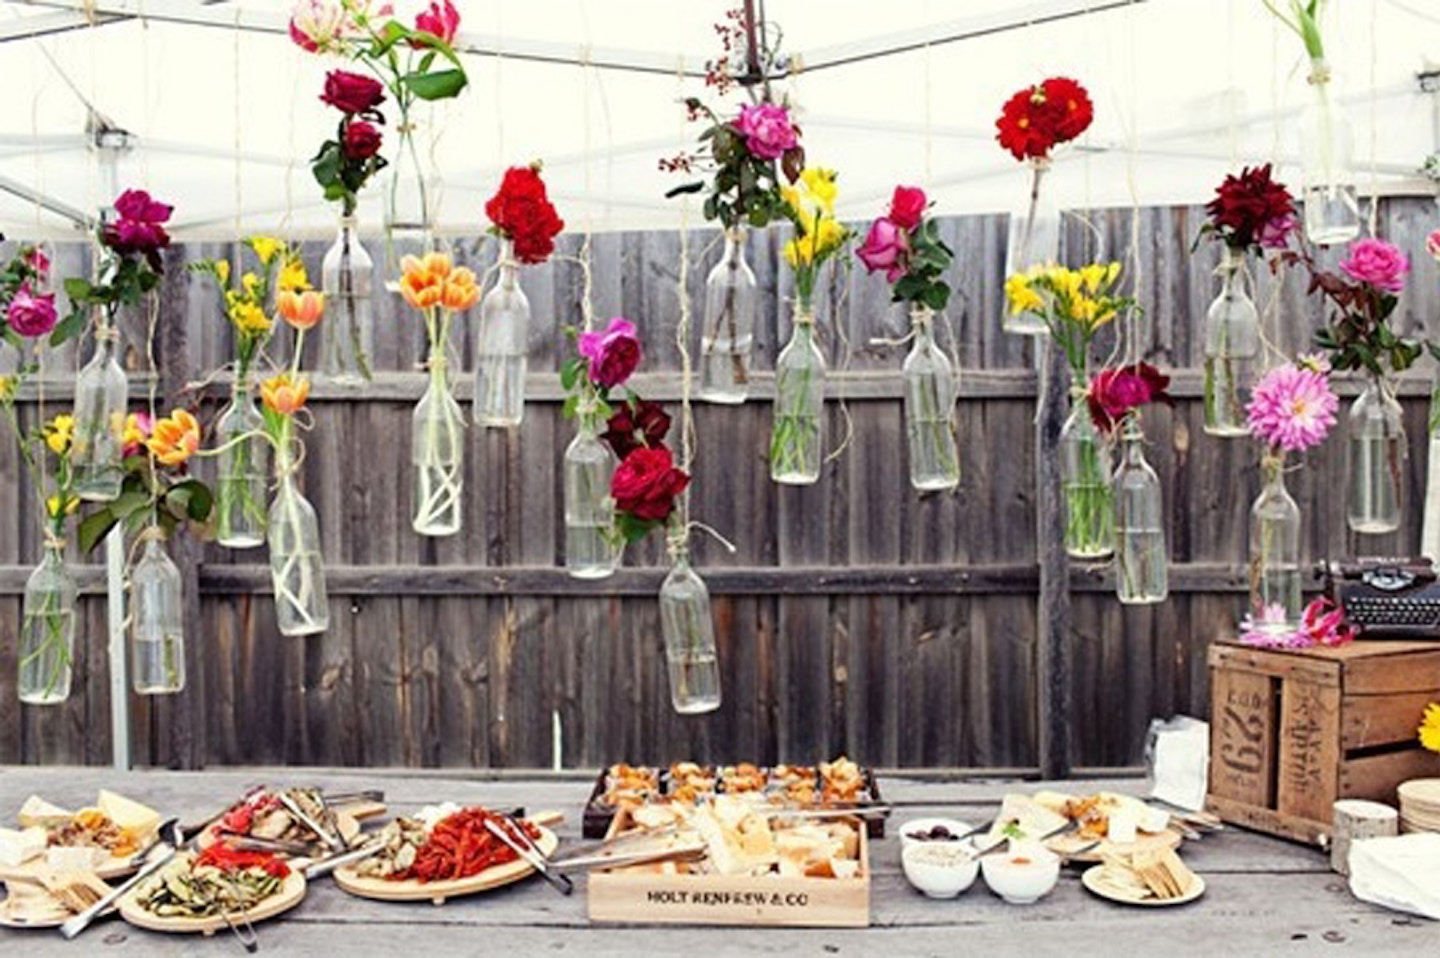 How to throw a chic (and cheap) backyard party